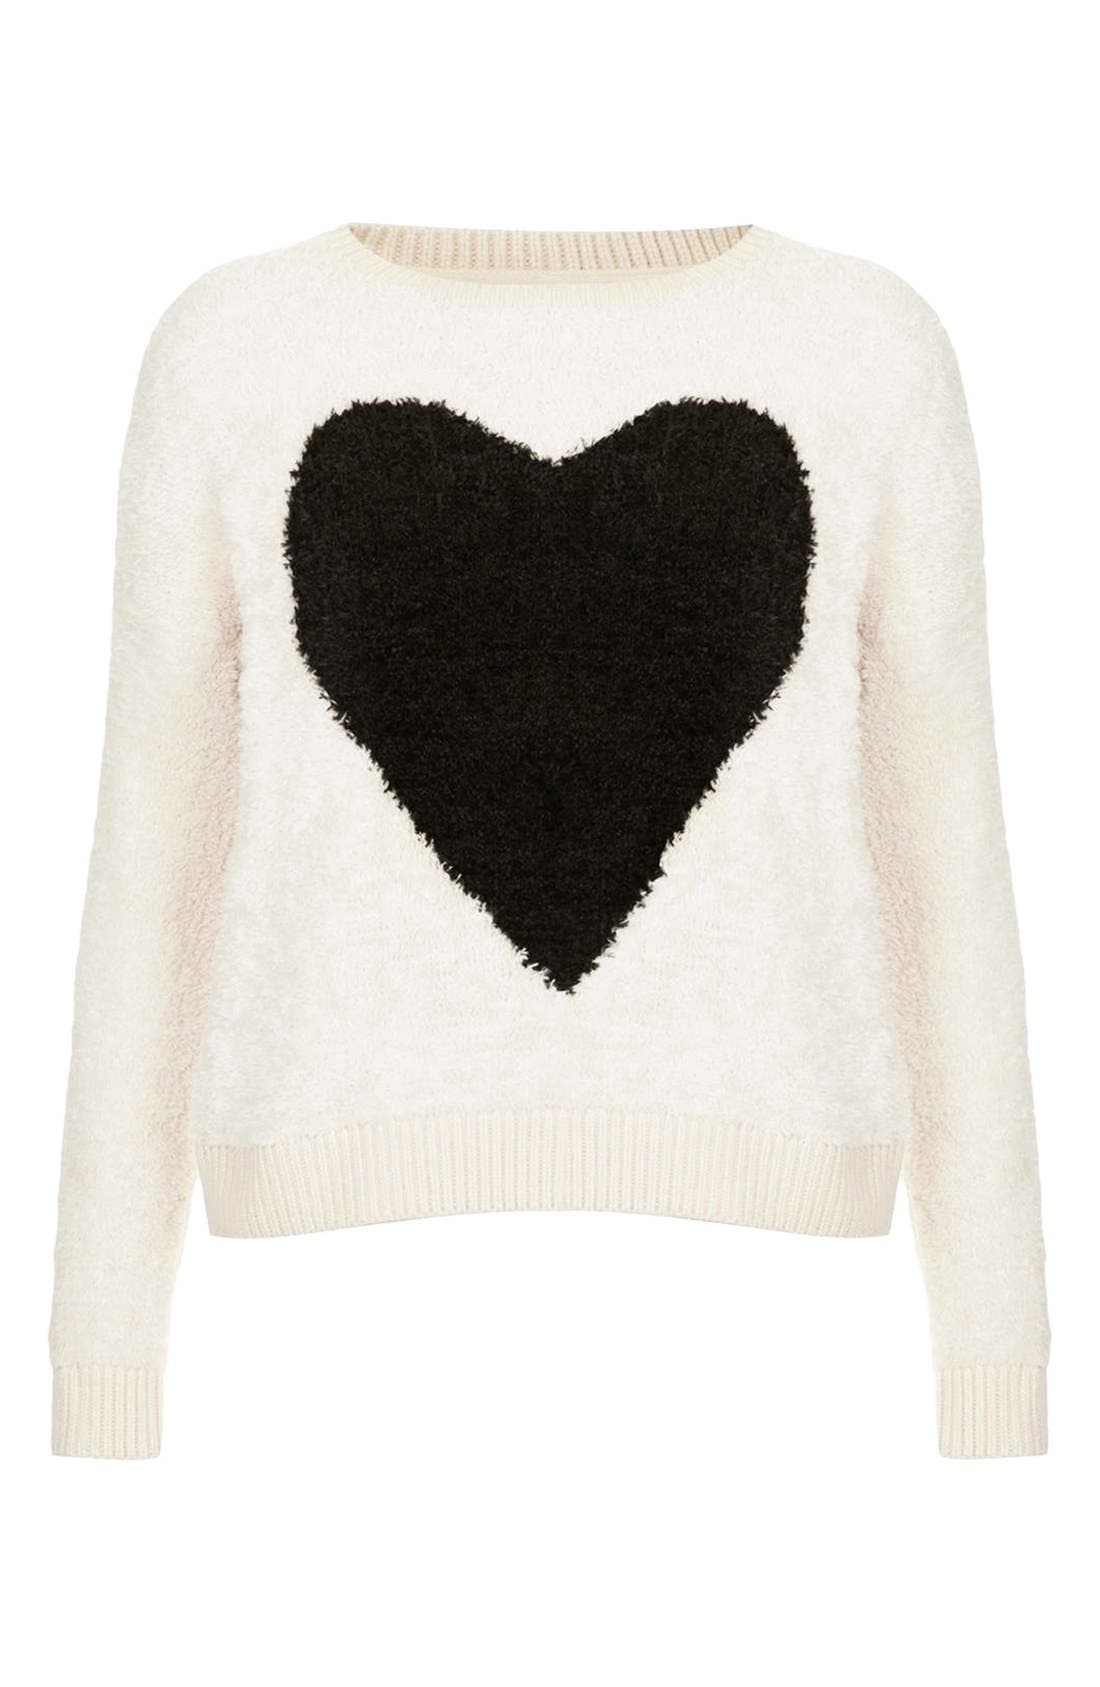 'Babe Heart' Sweater,                             Alternate thumbnail 2, color,                             101